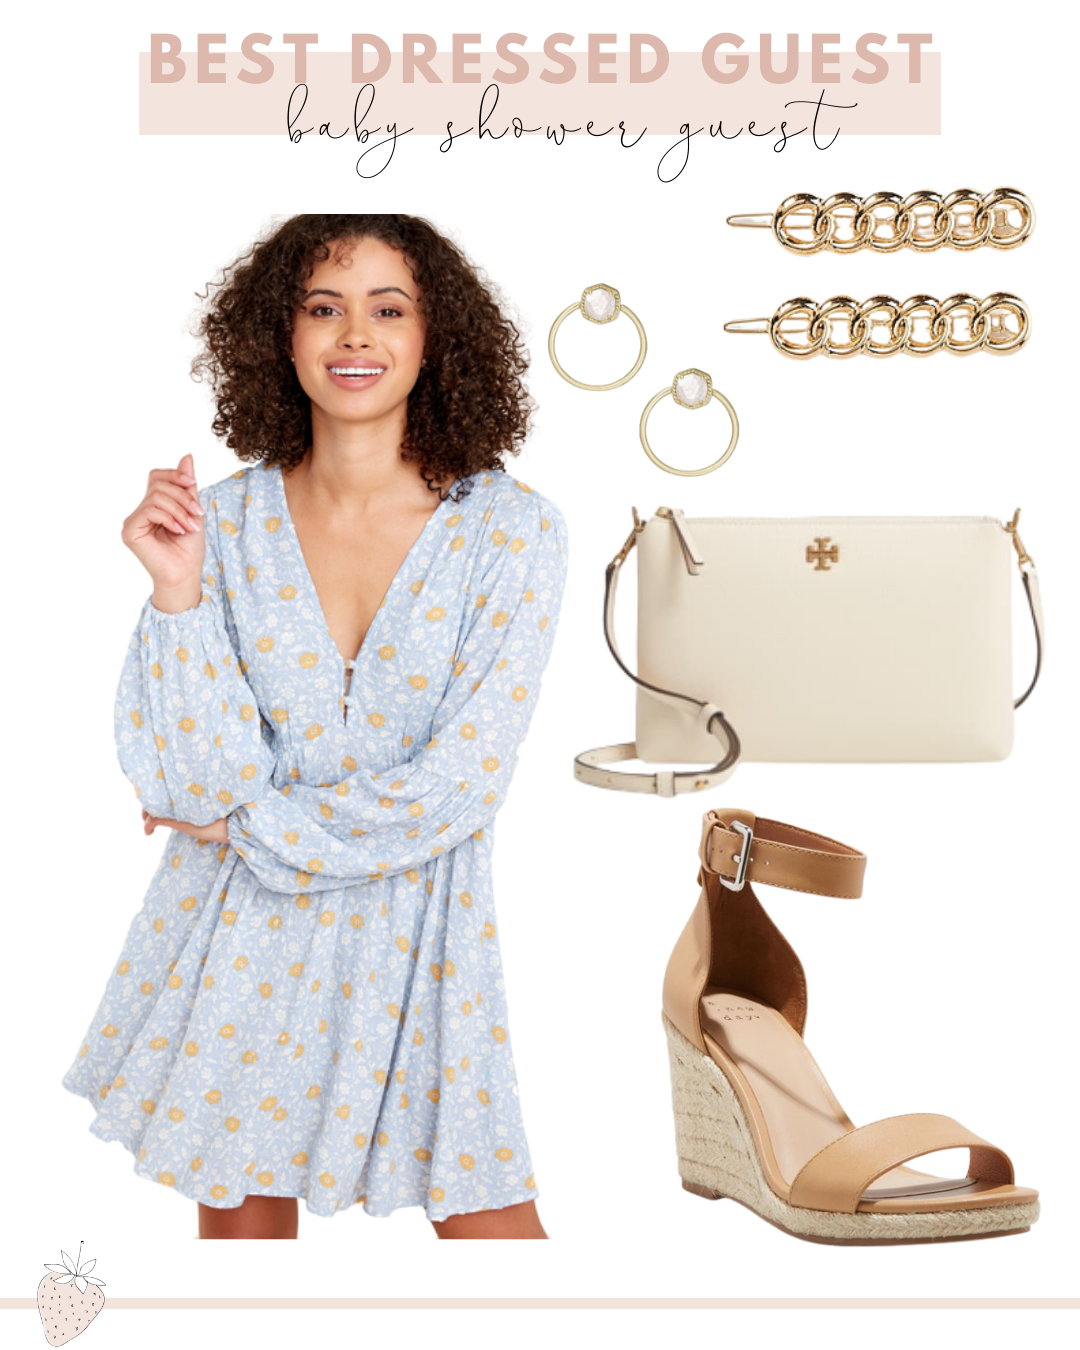 Best Dressed Guest Guide to Spring Events | spring baby shower guest dress